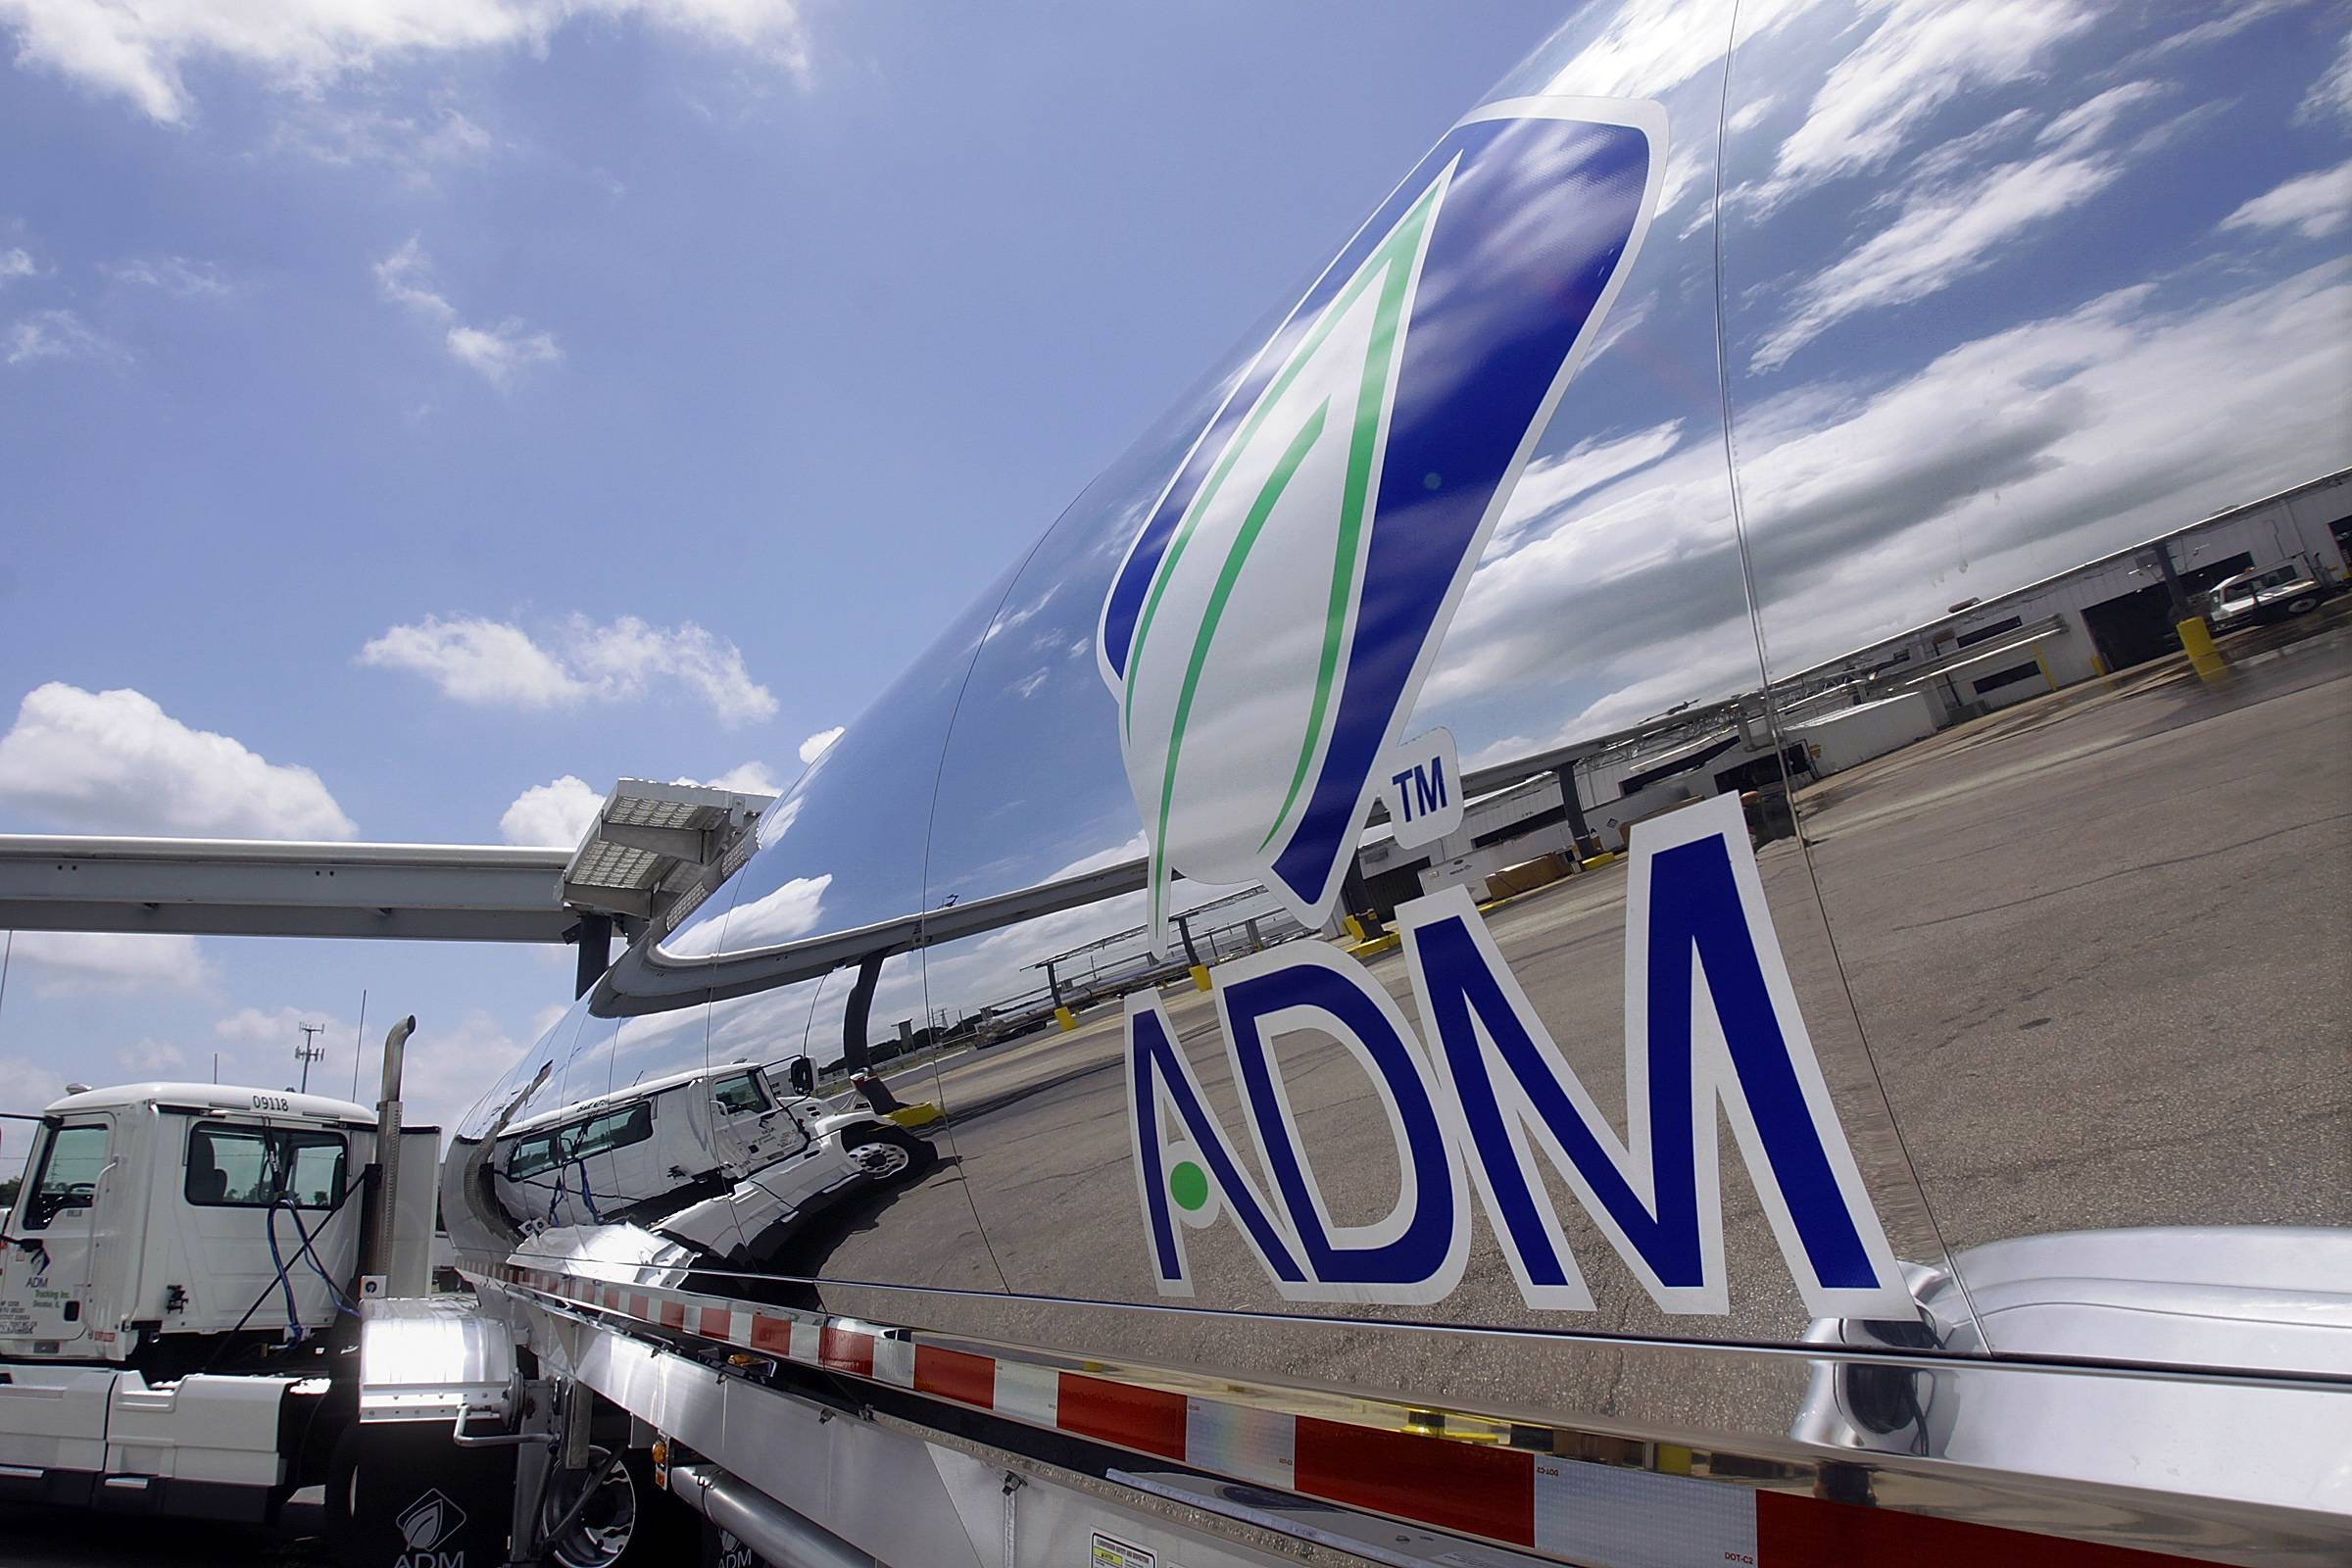 FILE PHOTO Chicago-based Archer Daniels Midland Company was named one of the world's most admired companies in the food production industry by Fortune magazine.